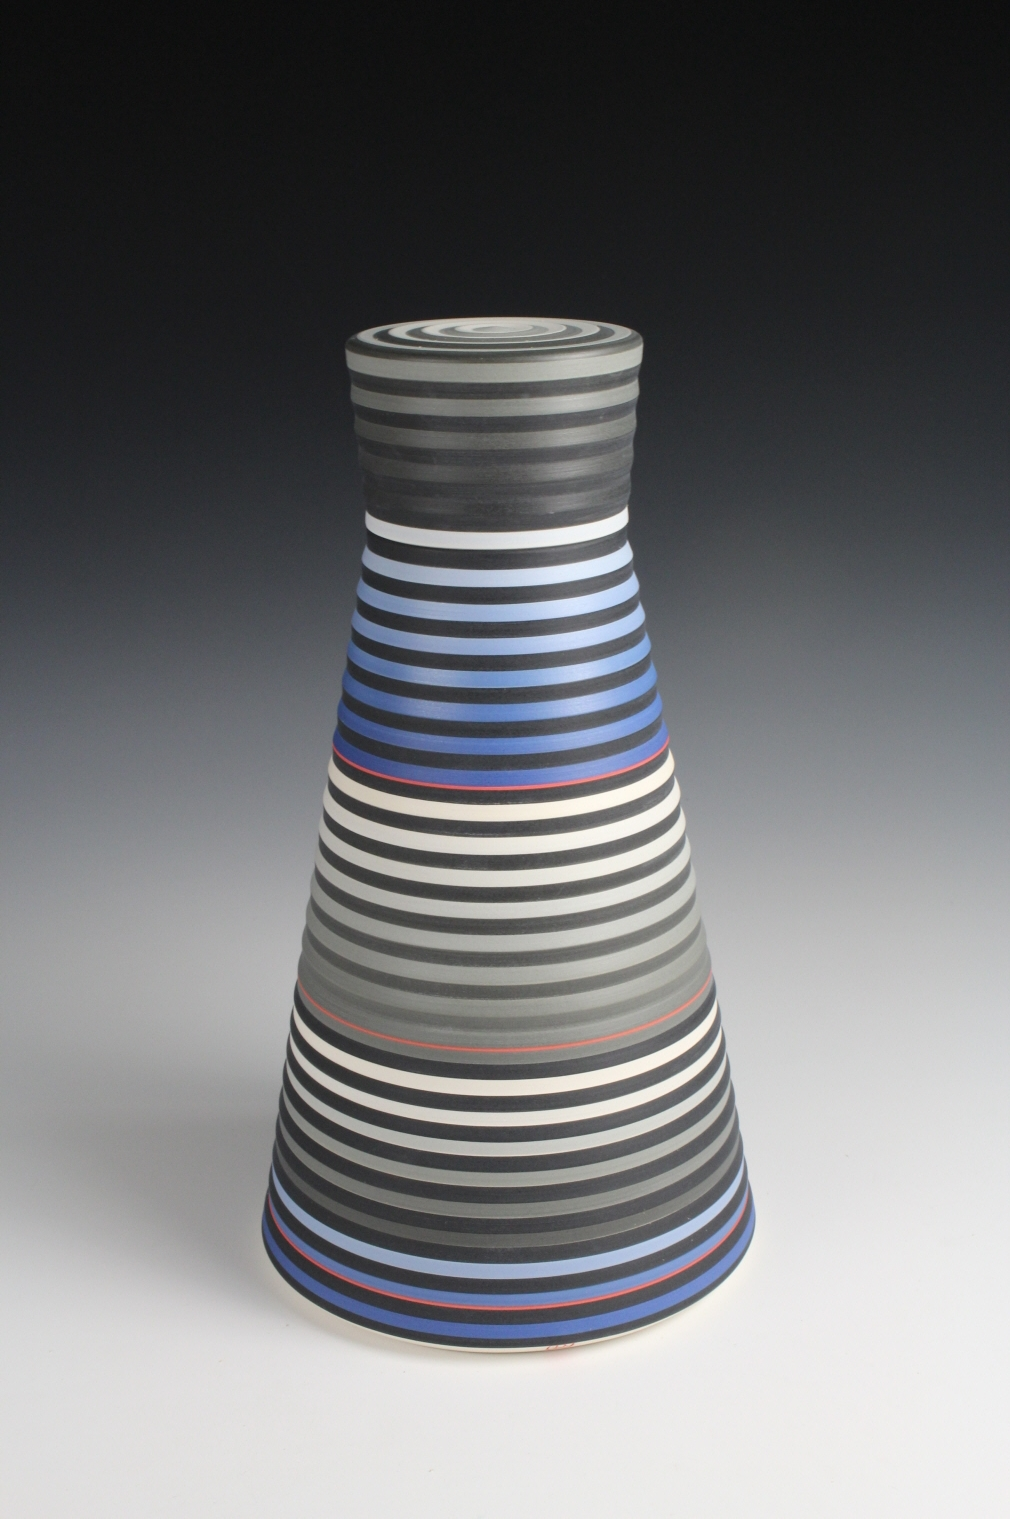 36.Object – Cylindrical form